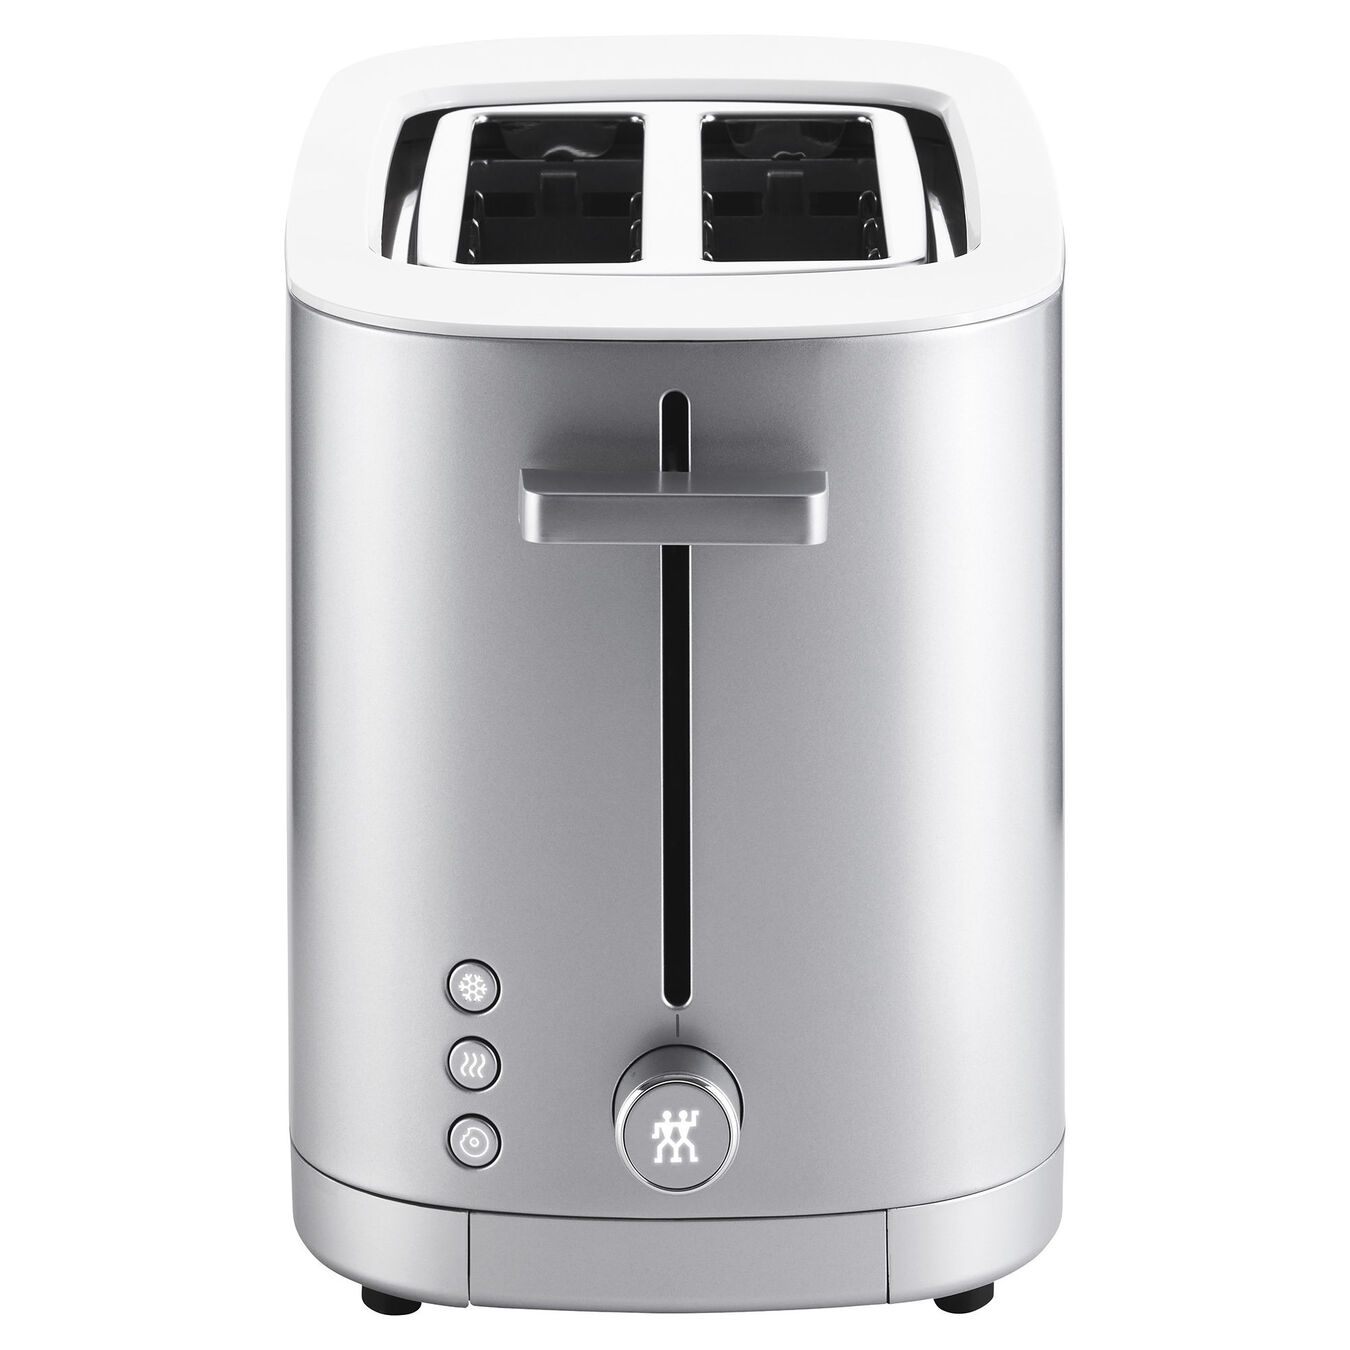 Toaster,,large 2